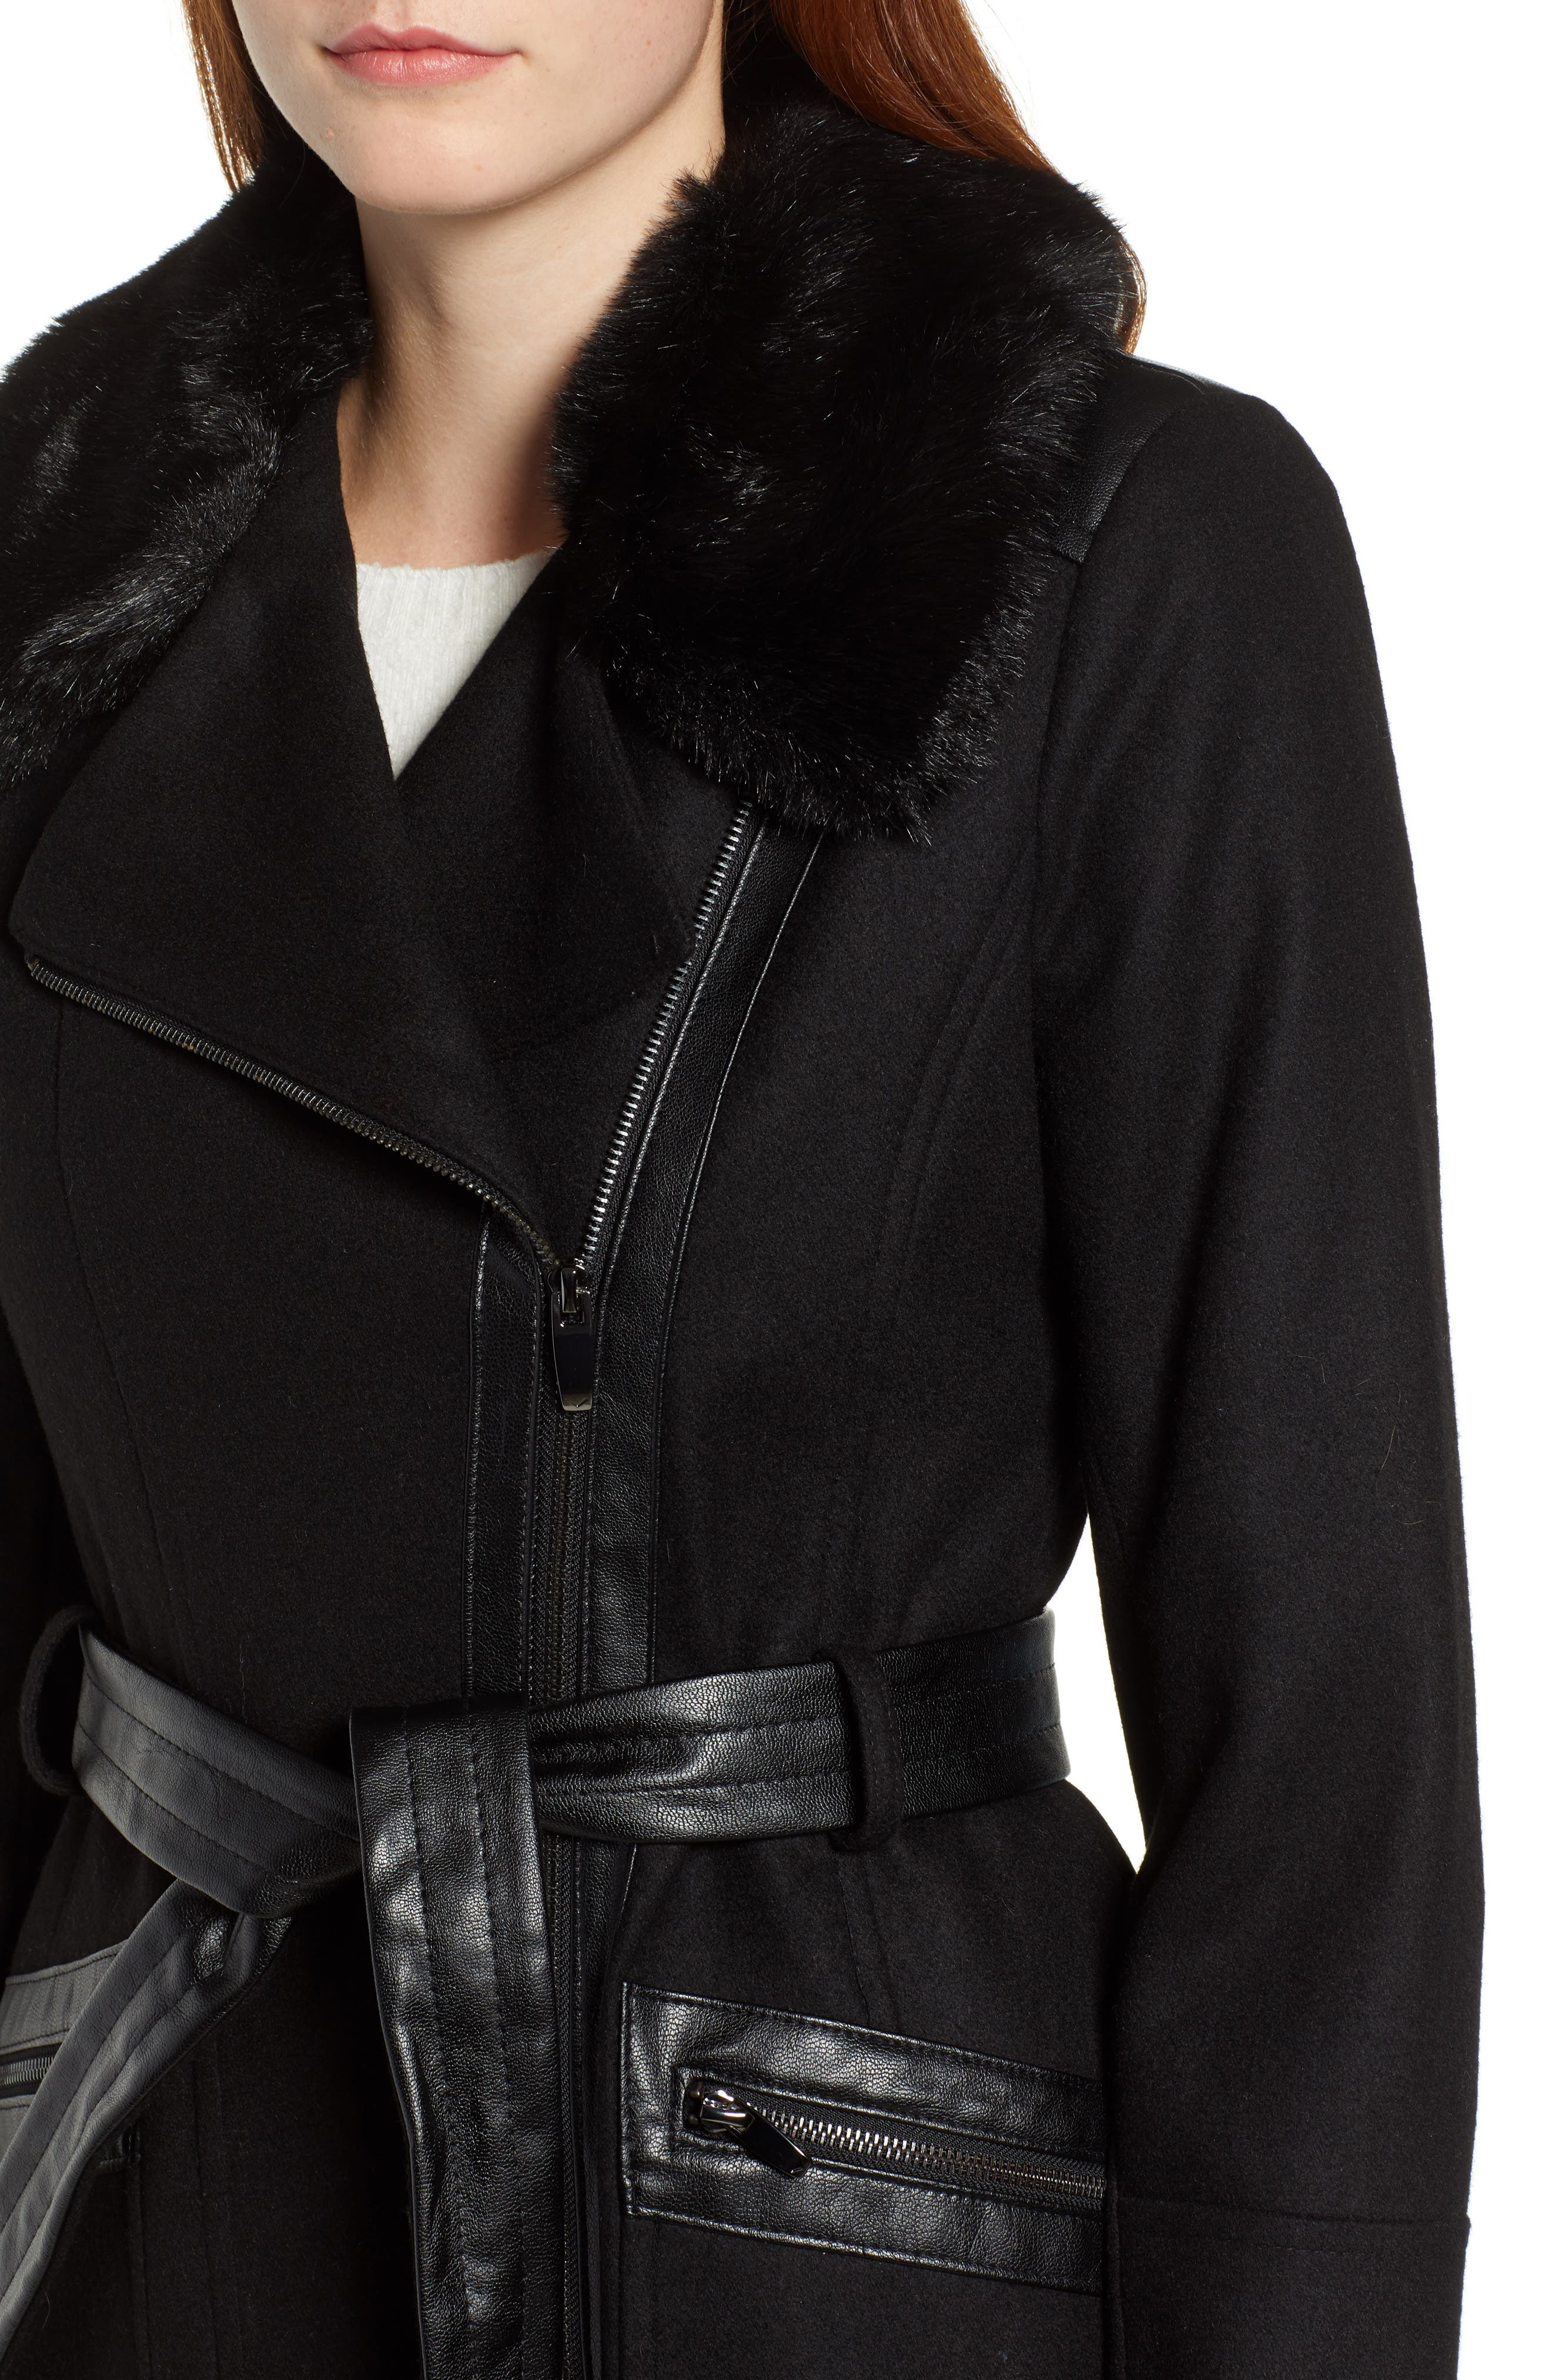 VIA SPIGA, Faux Fur Trim Belted Jacket, Alternate thumbnail 5, color, BLACK